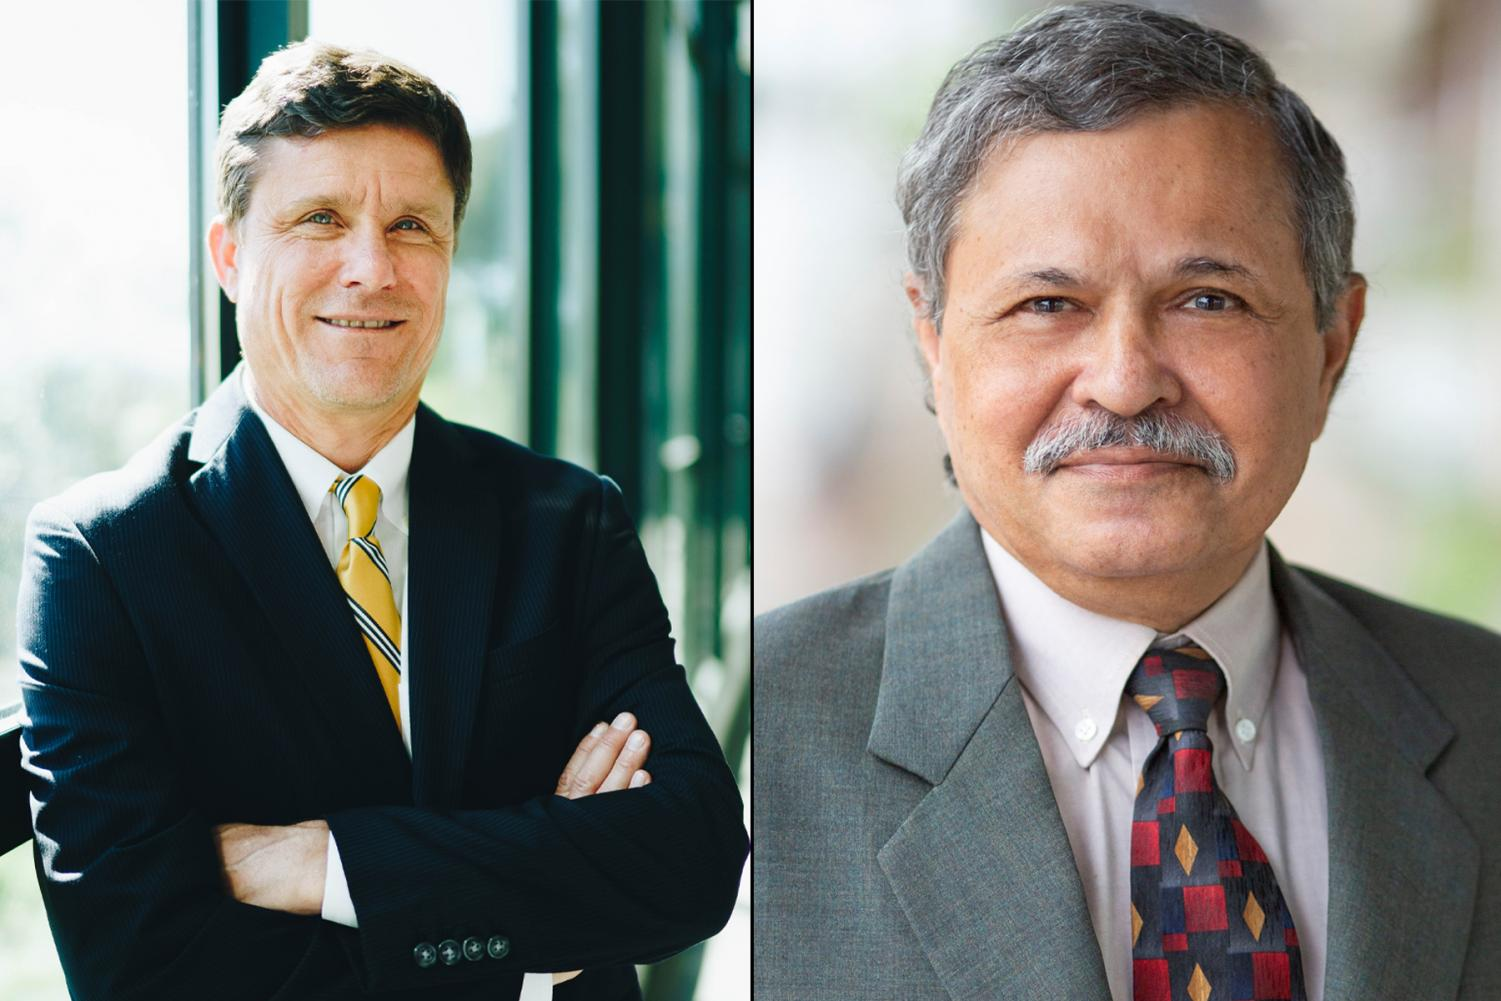 Dr. Kenneth Lawson (left) and Dr. Utpal K. Goswami are the two finalists for the position of Superintendent/President at City College. Photo courtesy of City College.